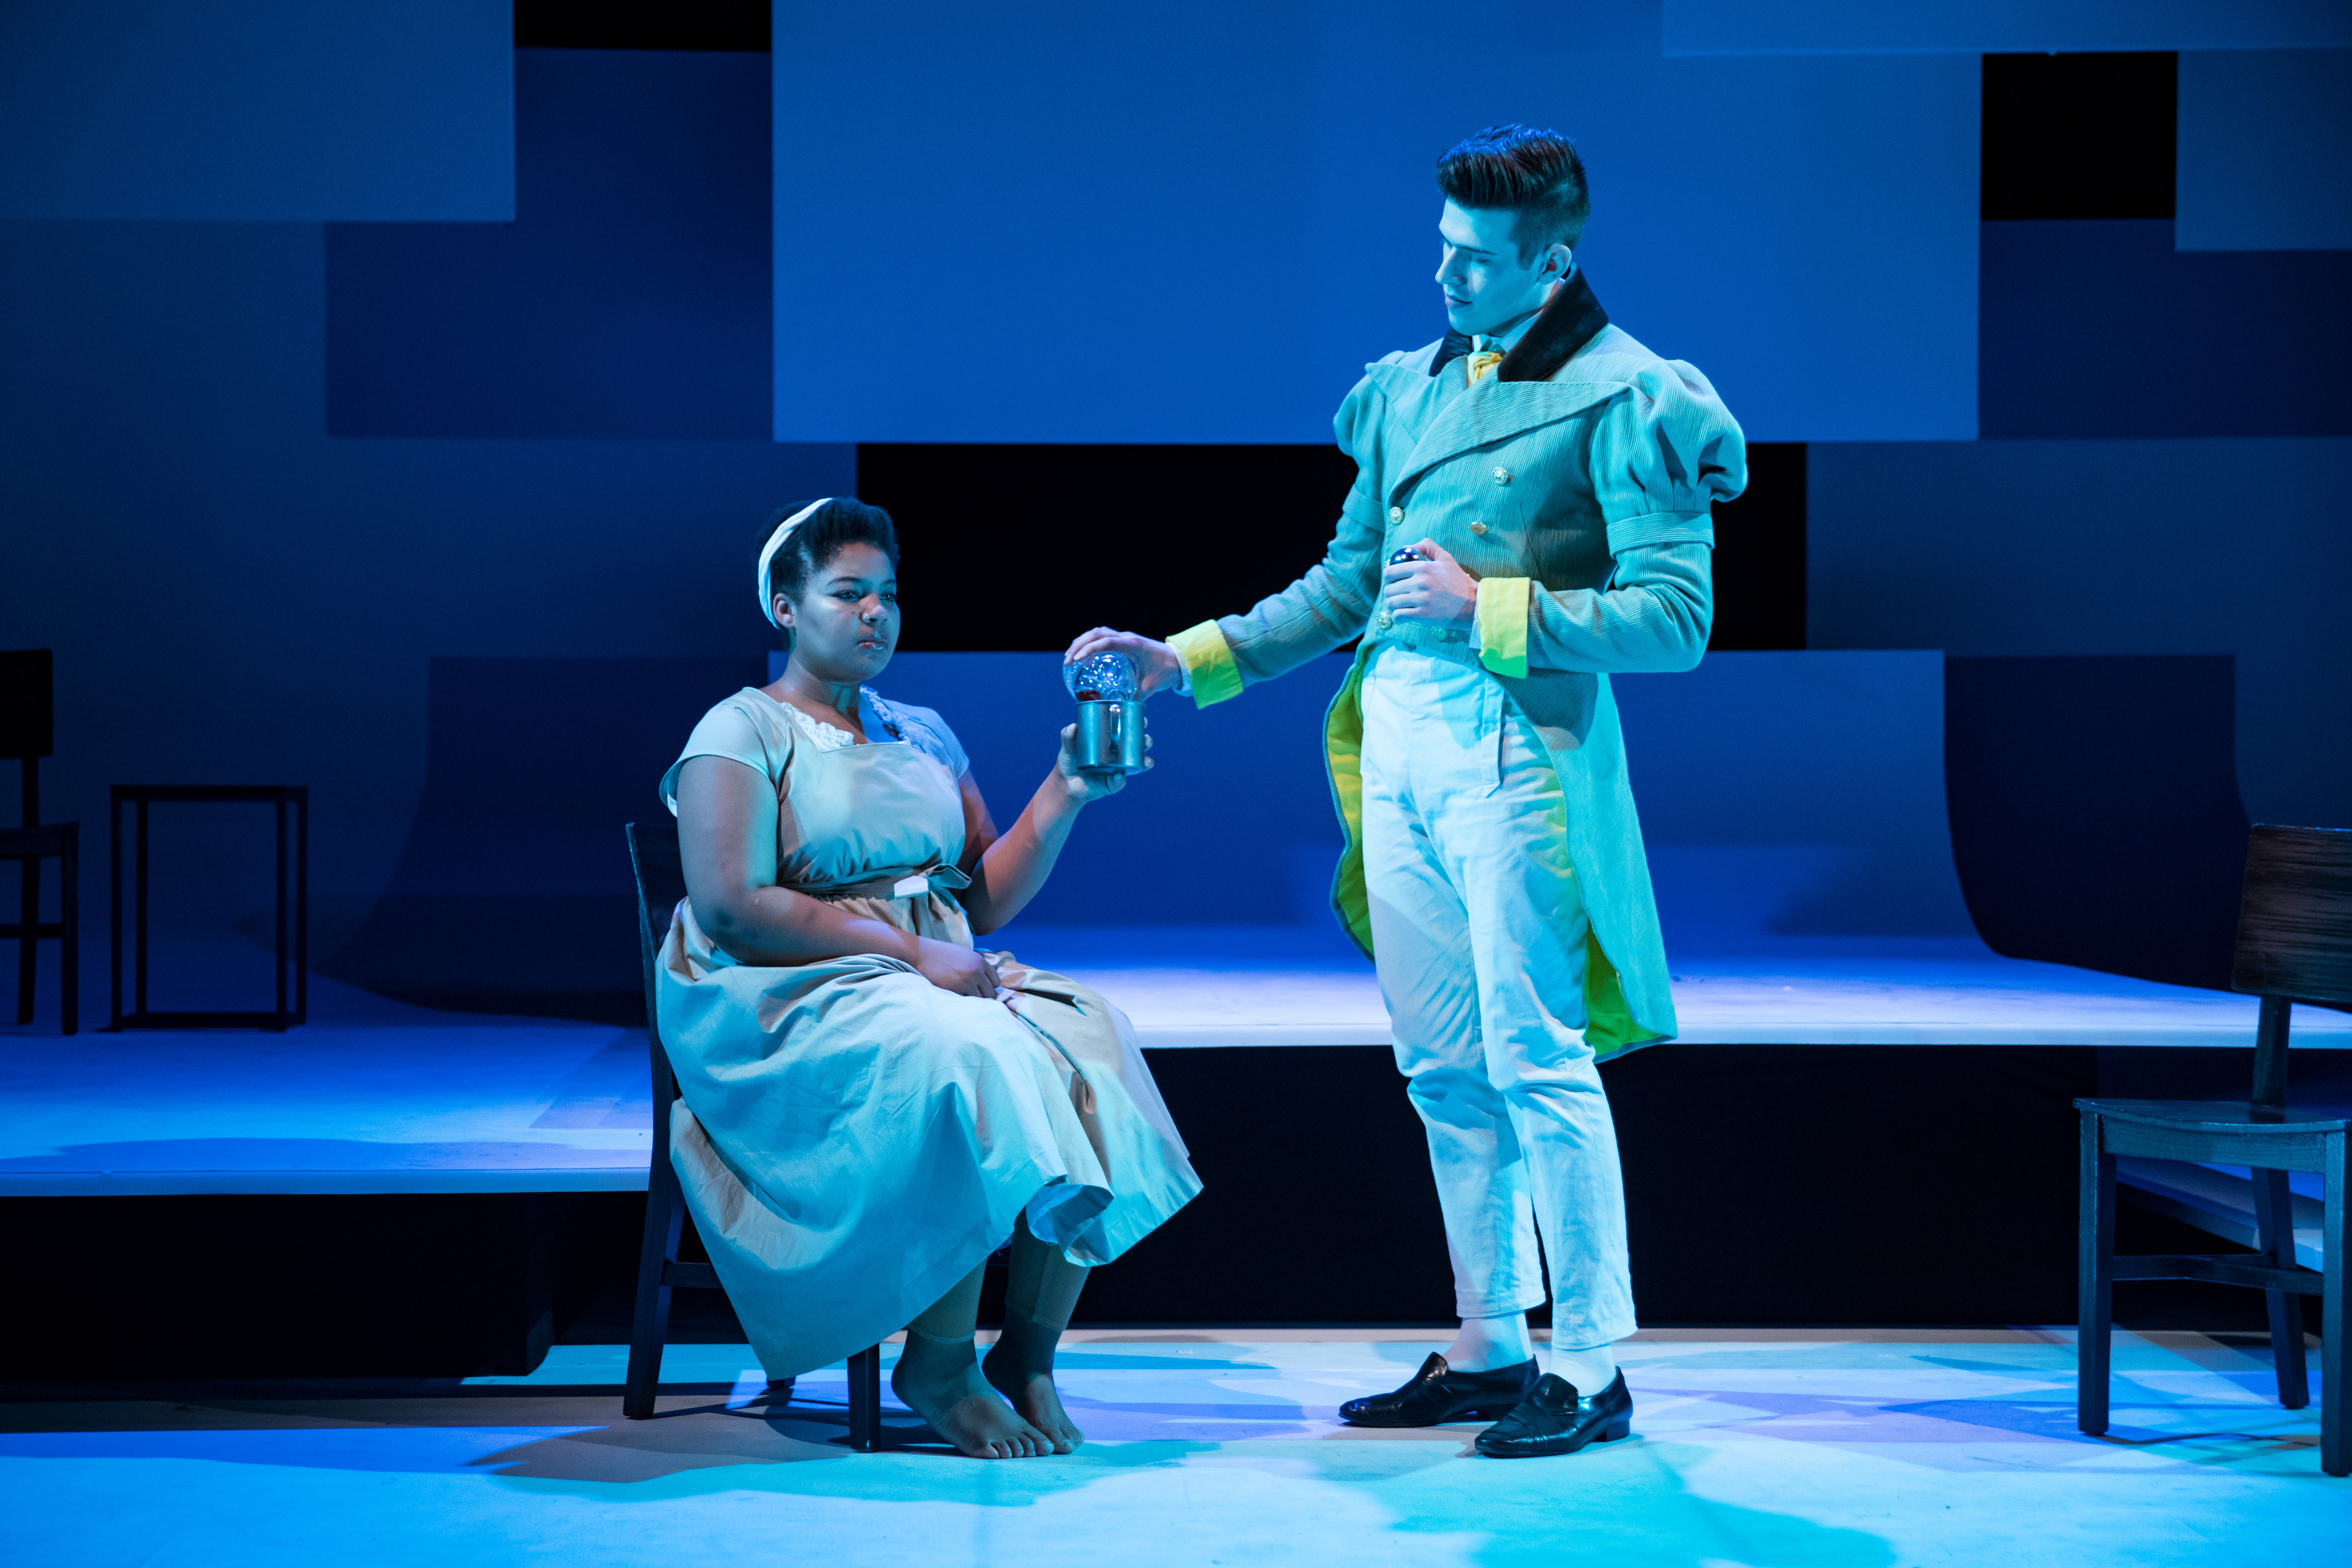 Georges Cuvier: production photo